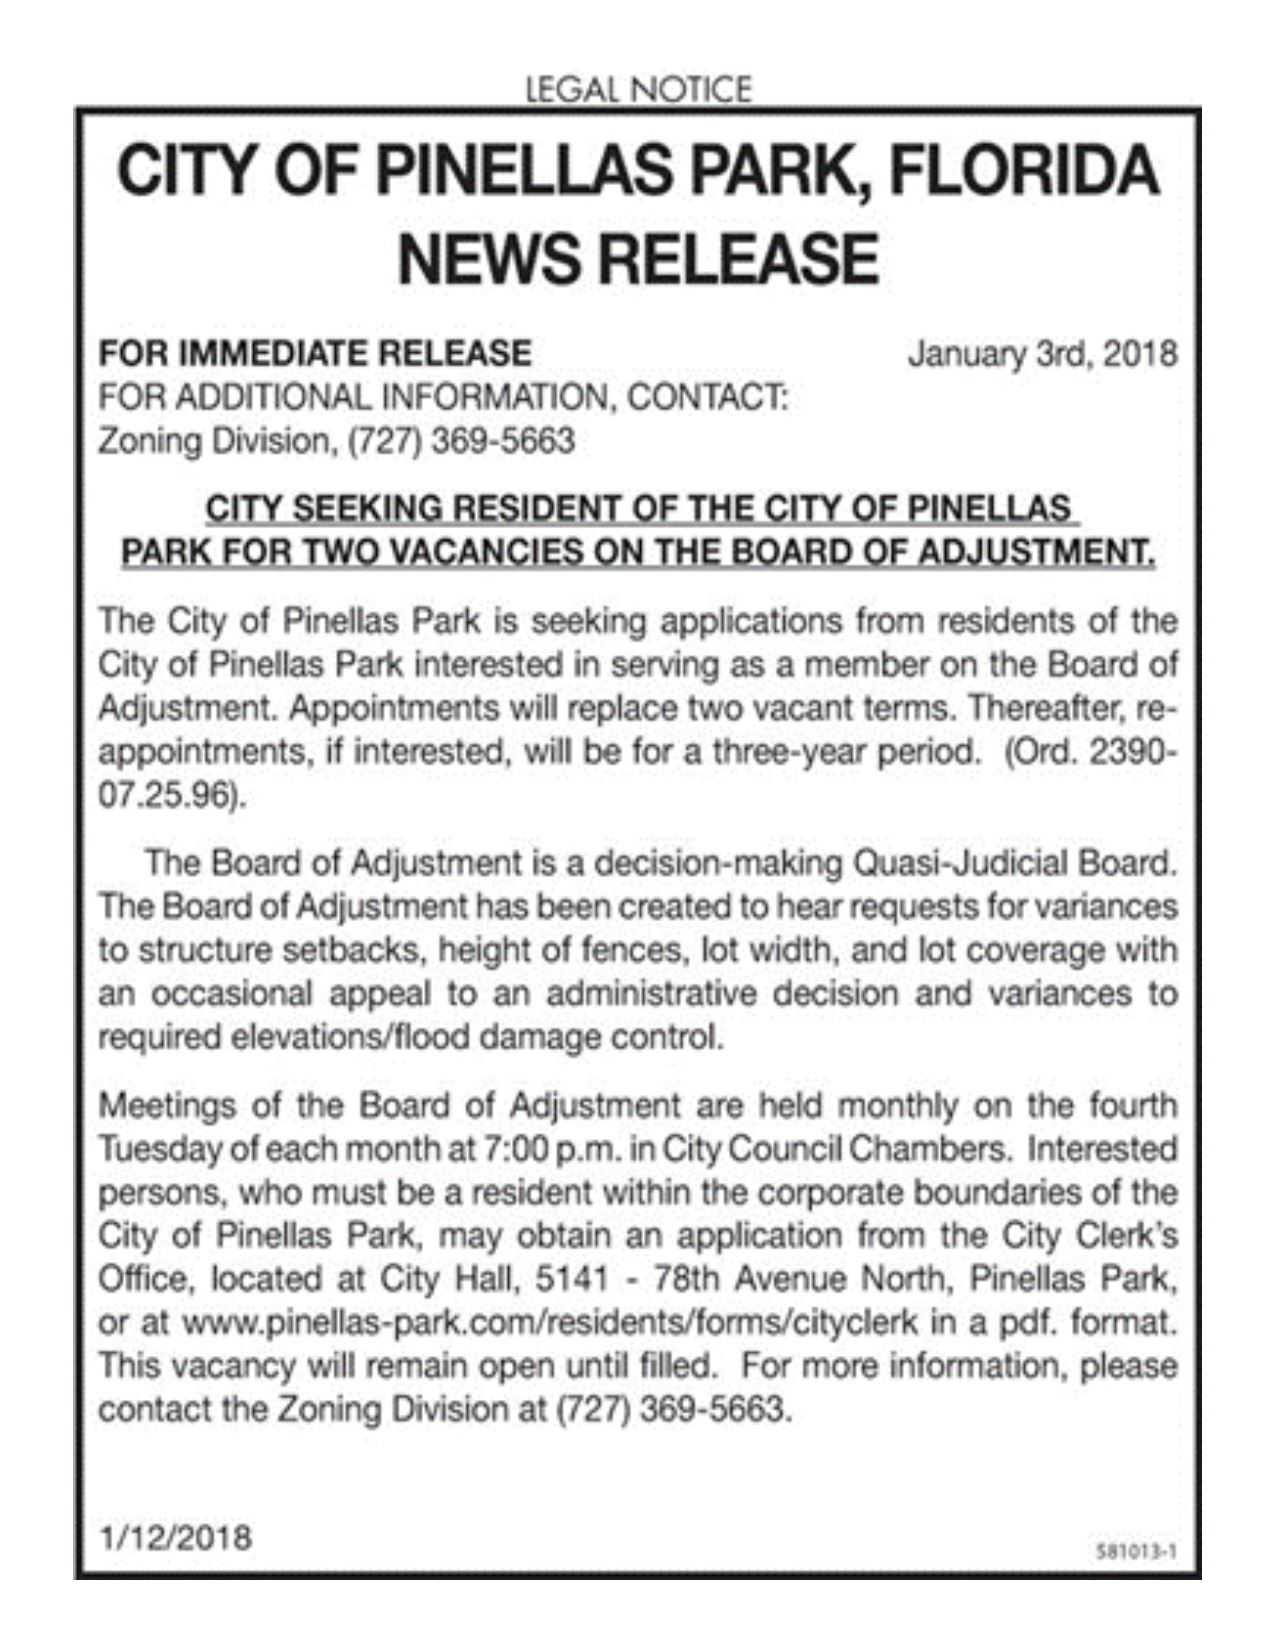 CITY OF PINELLAS PARK NEWS RELEASE_VACANCY ON BOA BARD